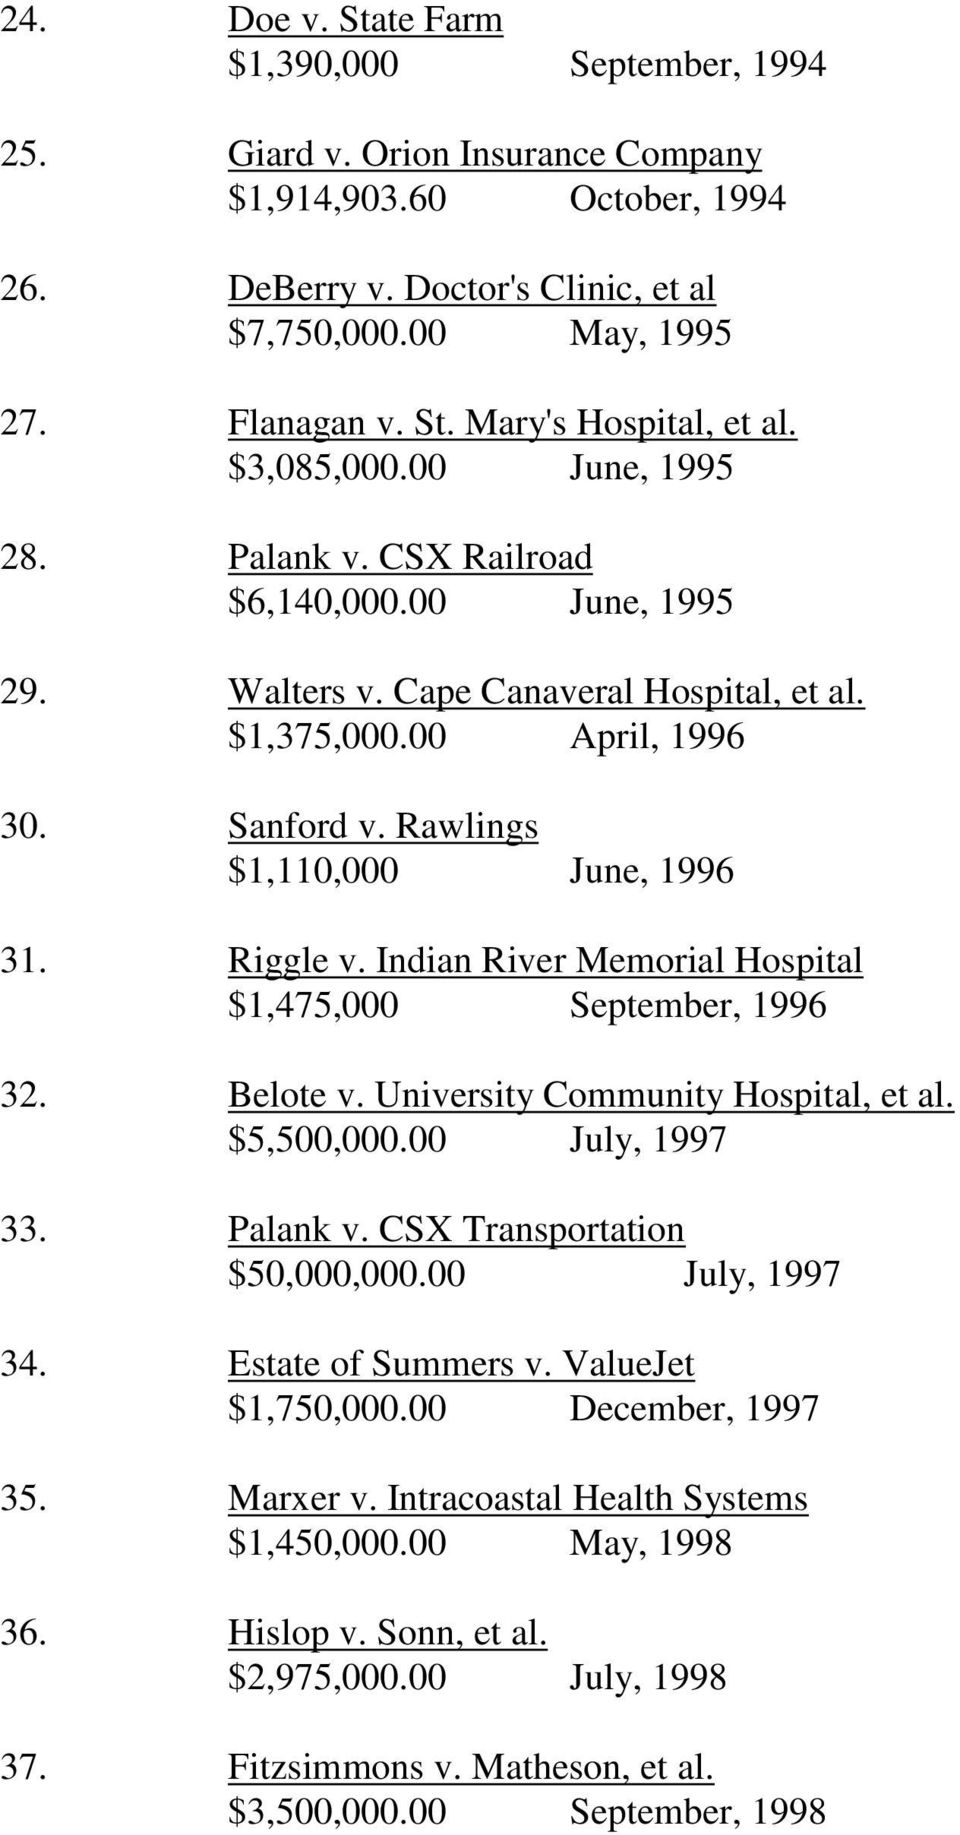 Riggle v. Indian River Memorial Hospital $1,475,000 September, 1996 32. Belote v. University Community Hospital, et al. $5,500,000.00 July, 1997 33. Palank v. CSX Transportation $50,000,000.